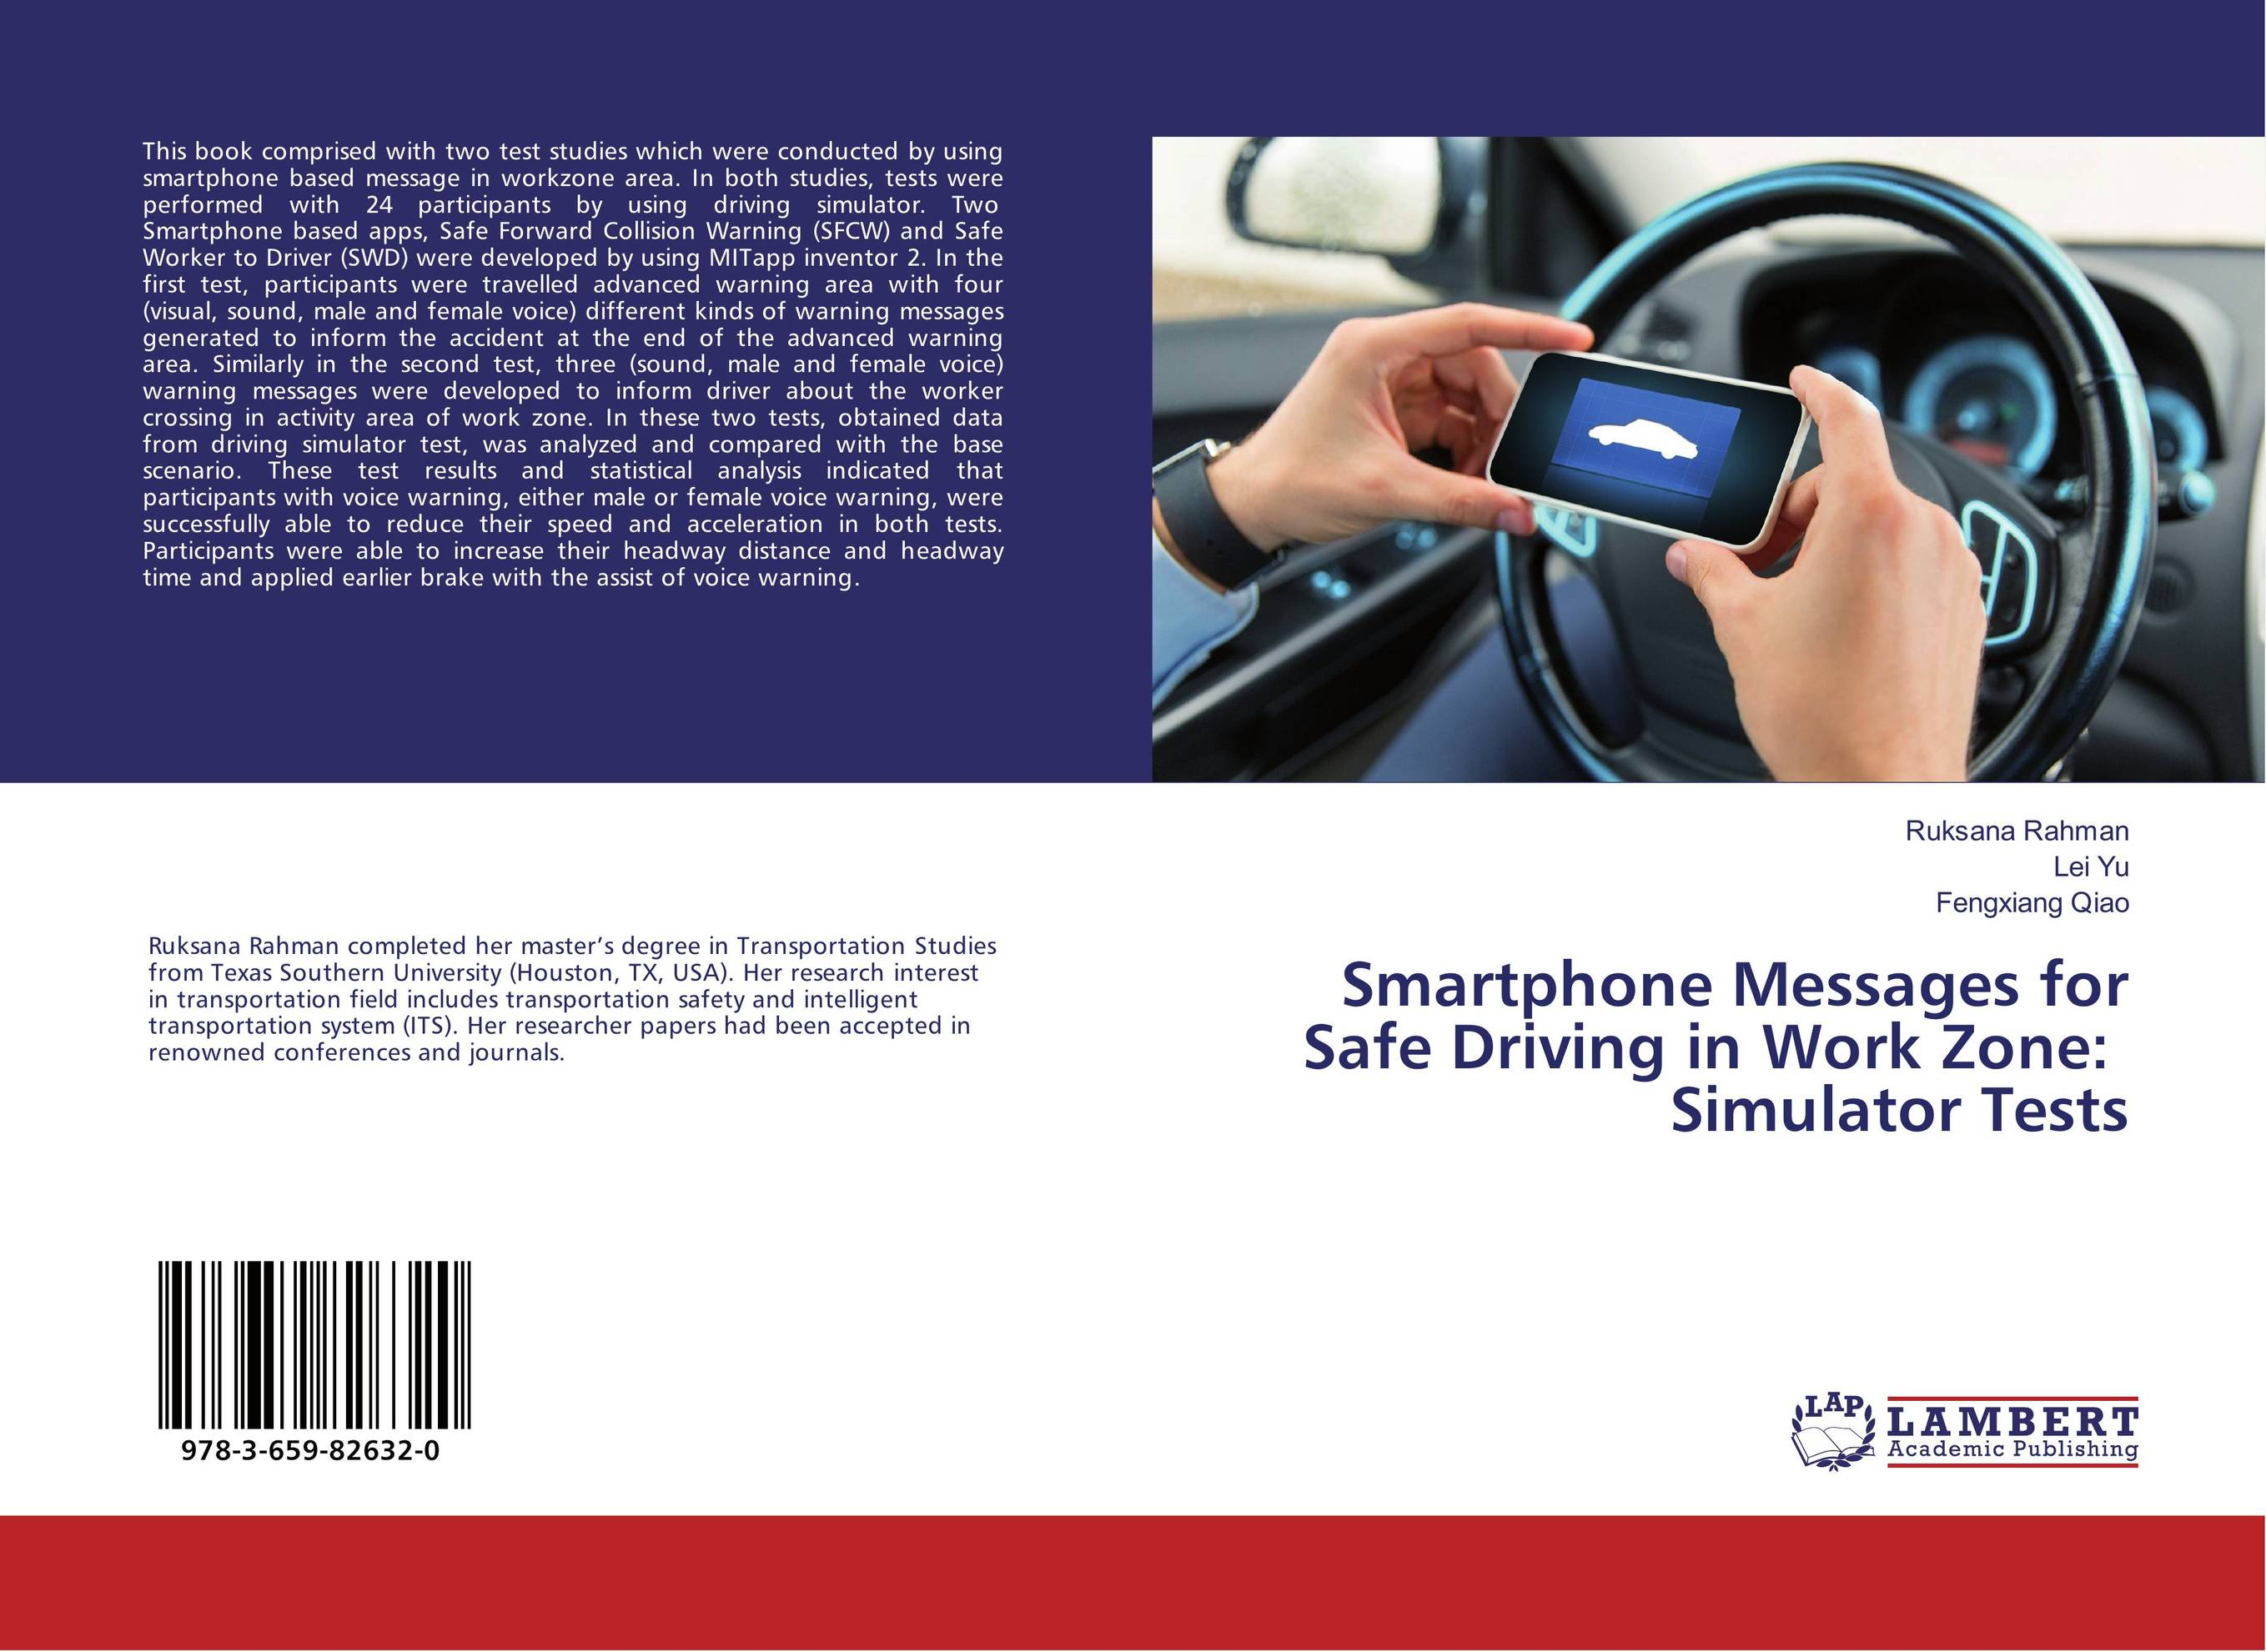 Smartphone Messages for Safe Driving in Work Zone: Simulator Tests fates warning fates warning theories of flight 2 lp